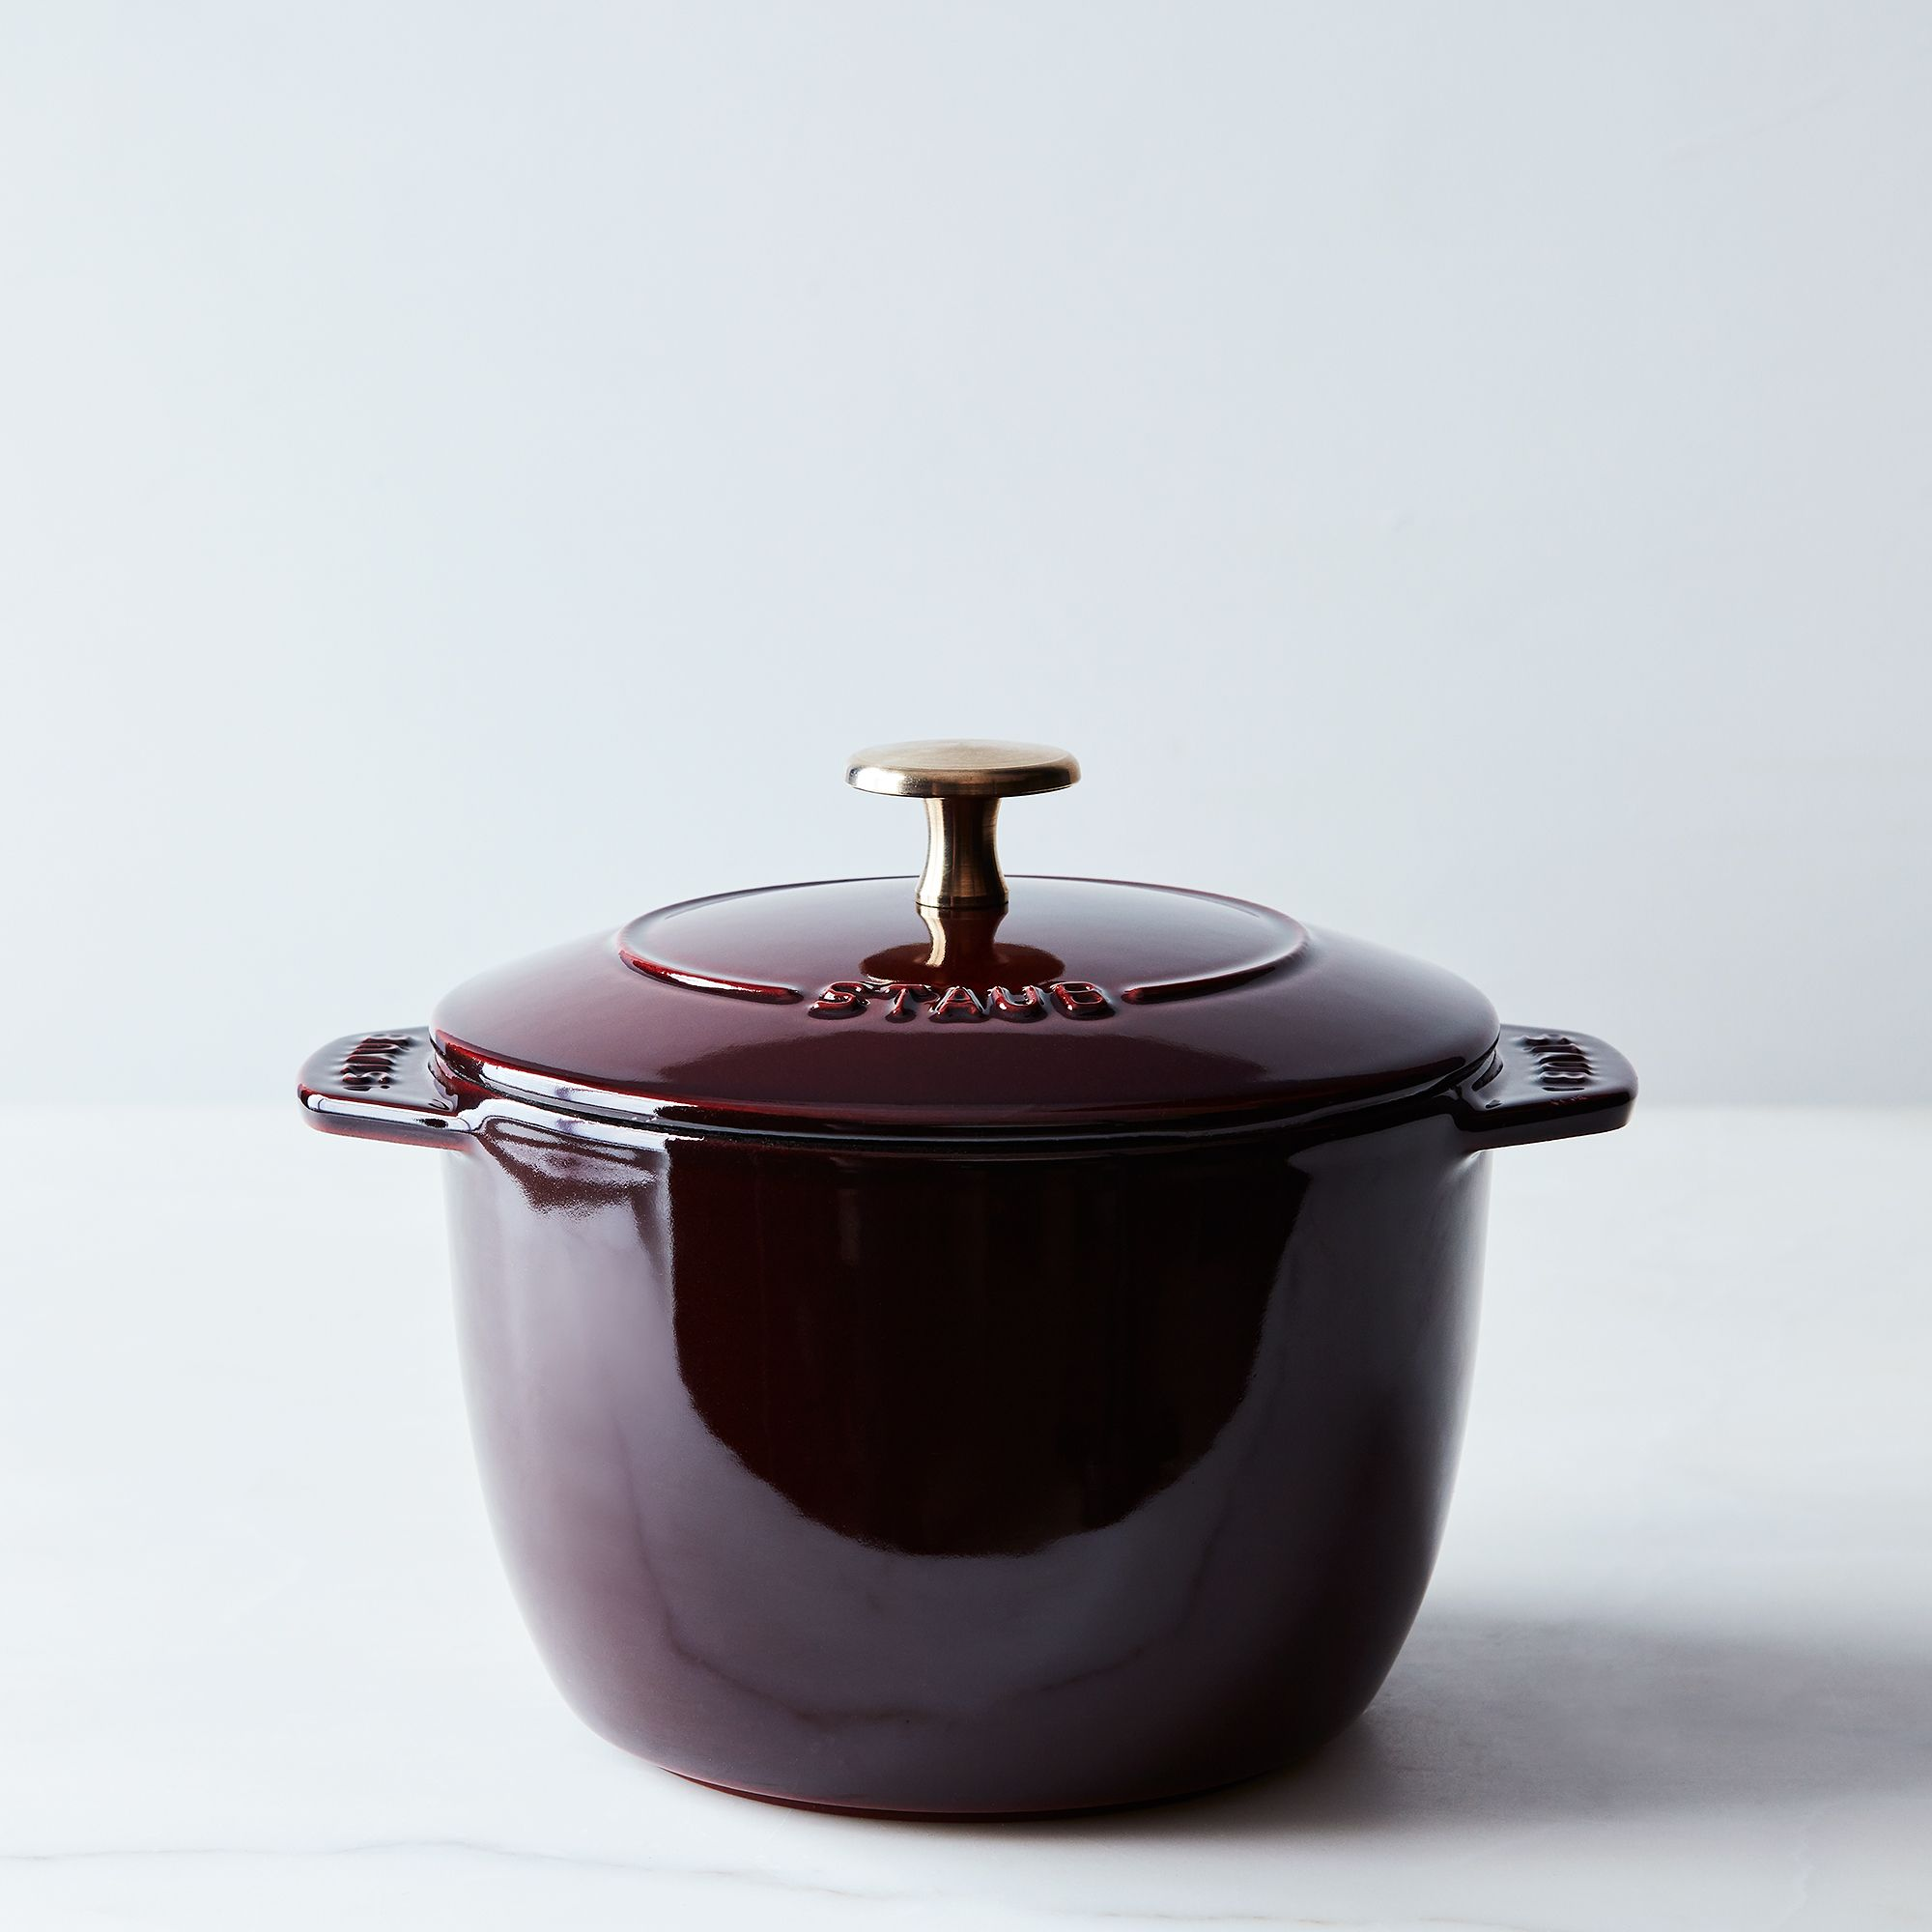 Food52 X Staub Petite French Oven Stovetop Rice Cooker, 1.5qt Grenadine & Brass